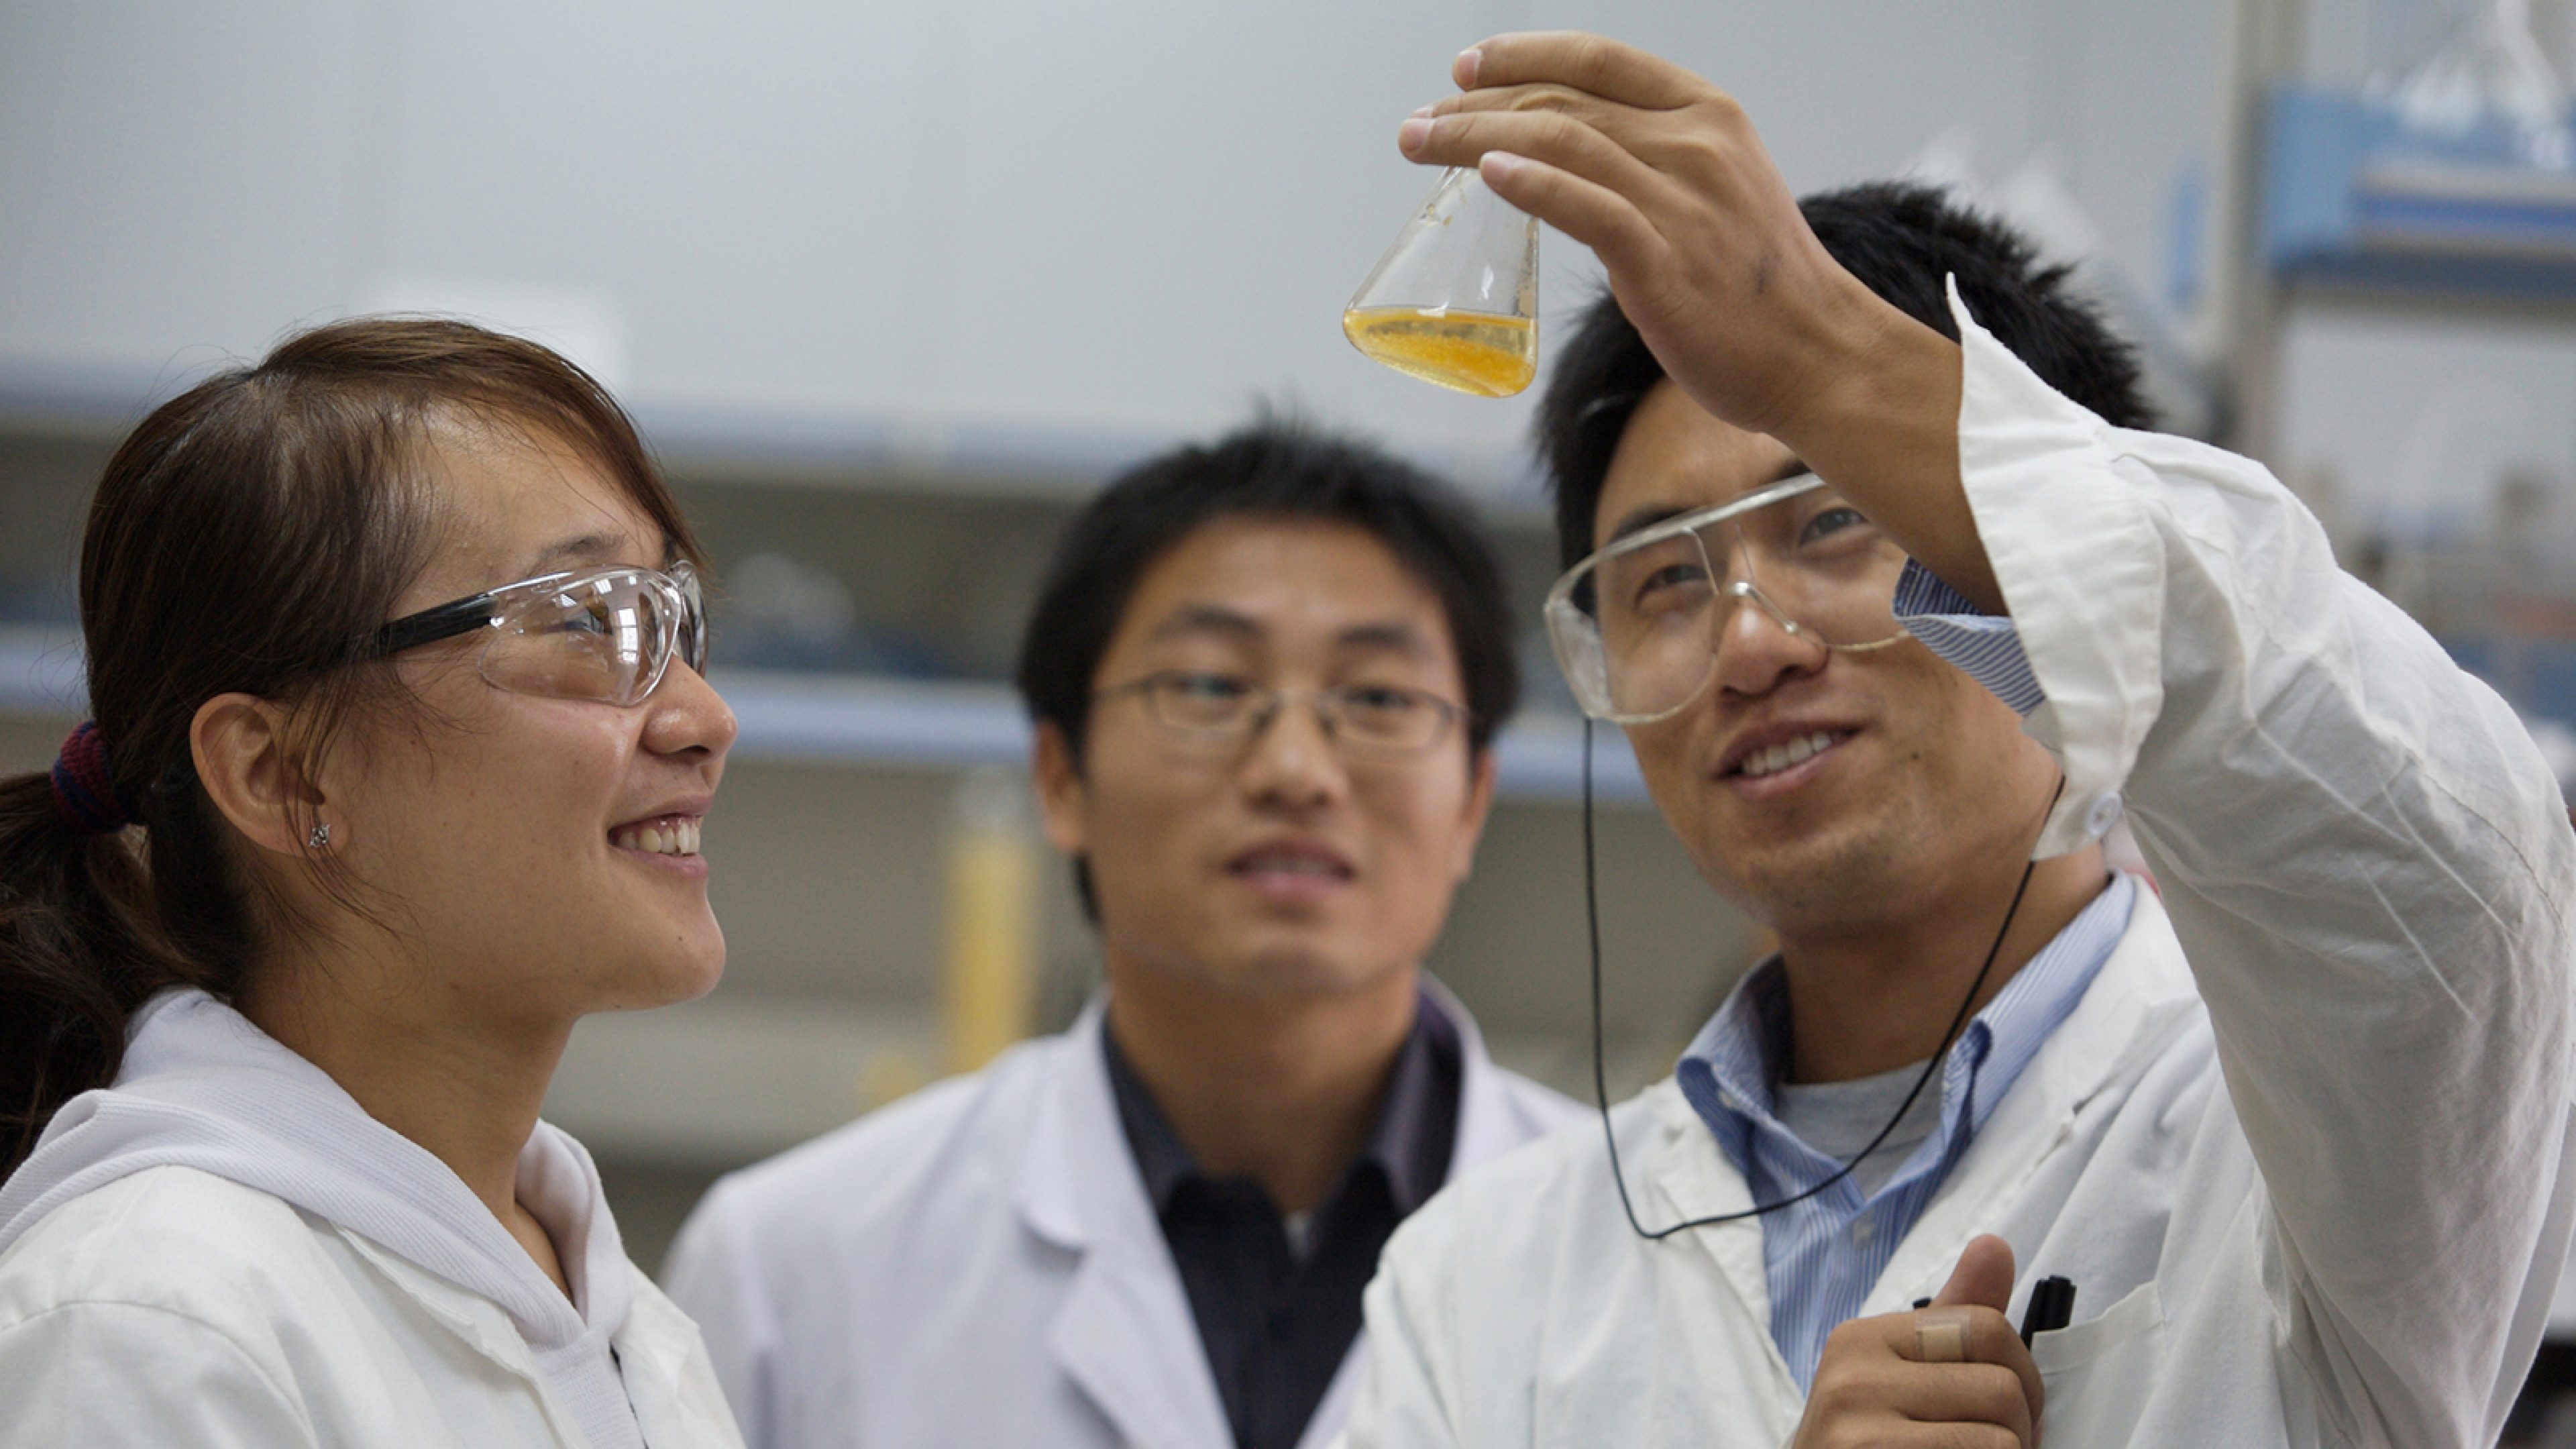 Researchers analyzing chemicals